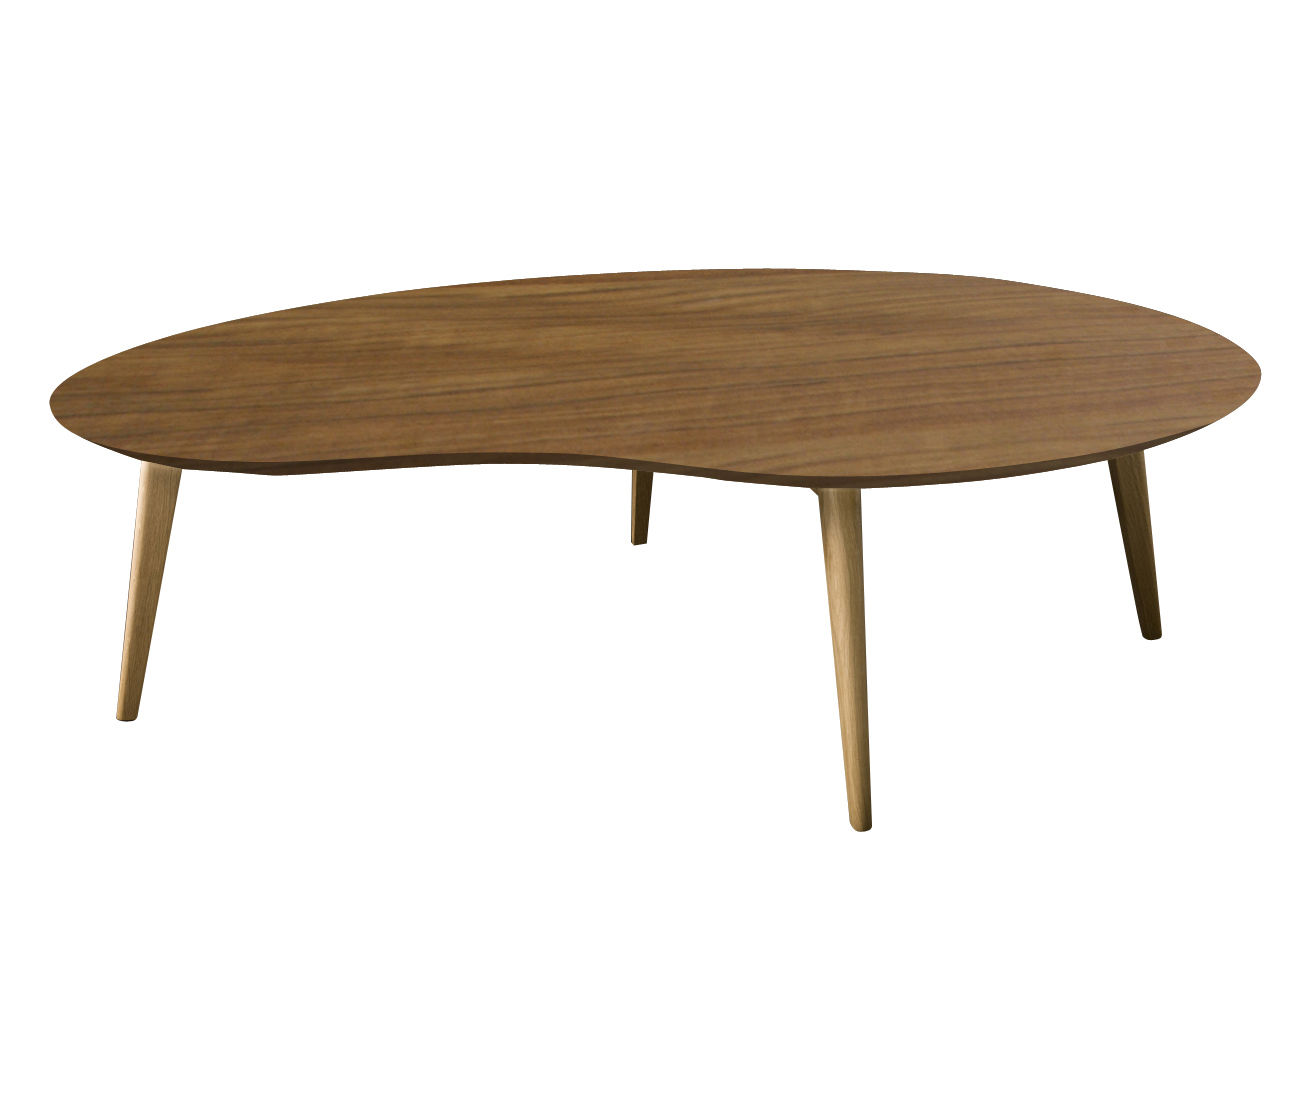 Table basse lalinde xxl haricot l 130cm pieds bois for Table basse xxl